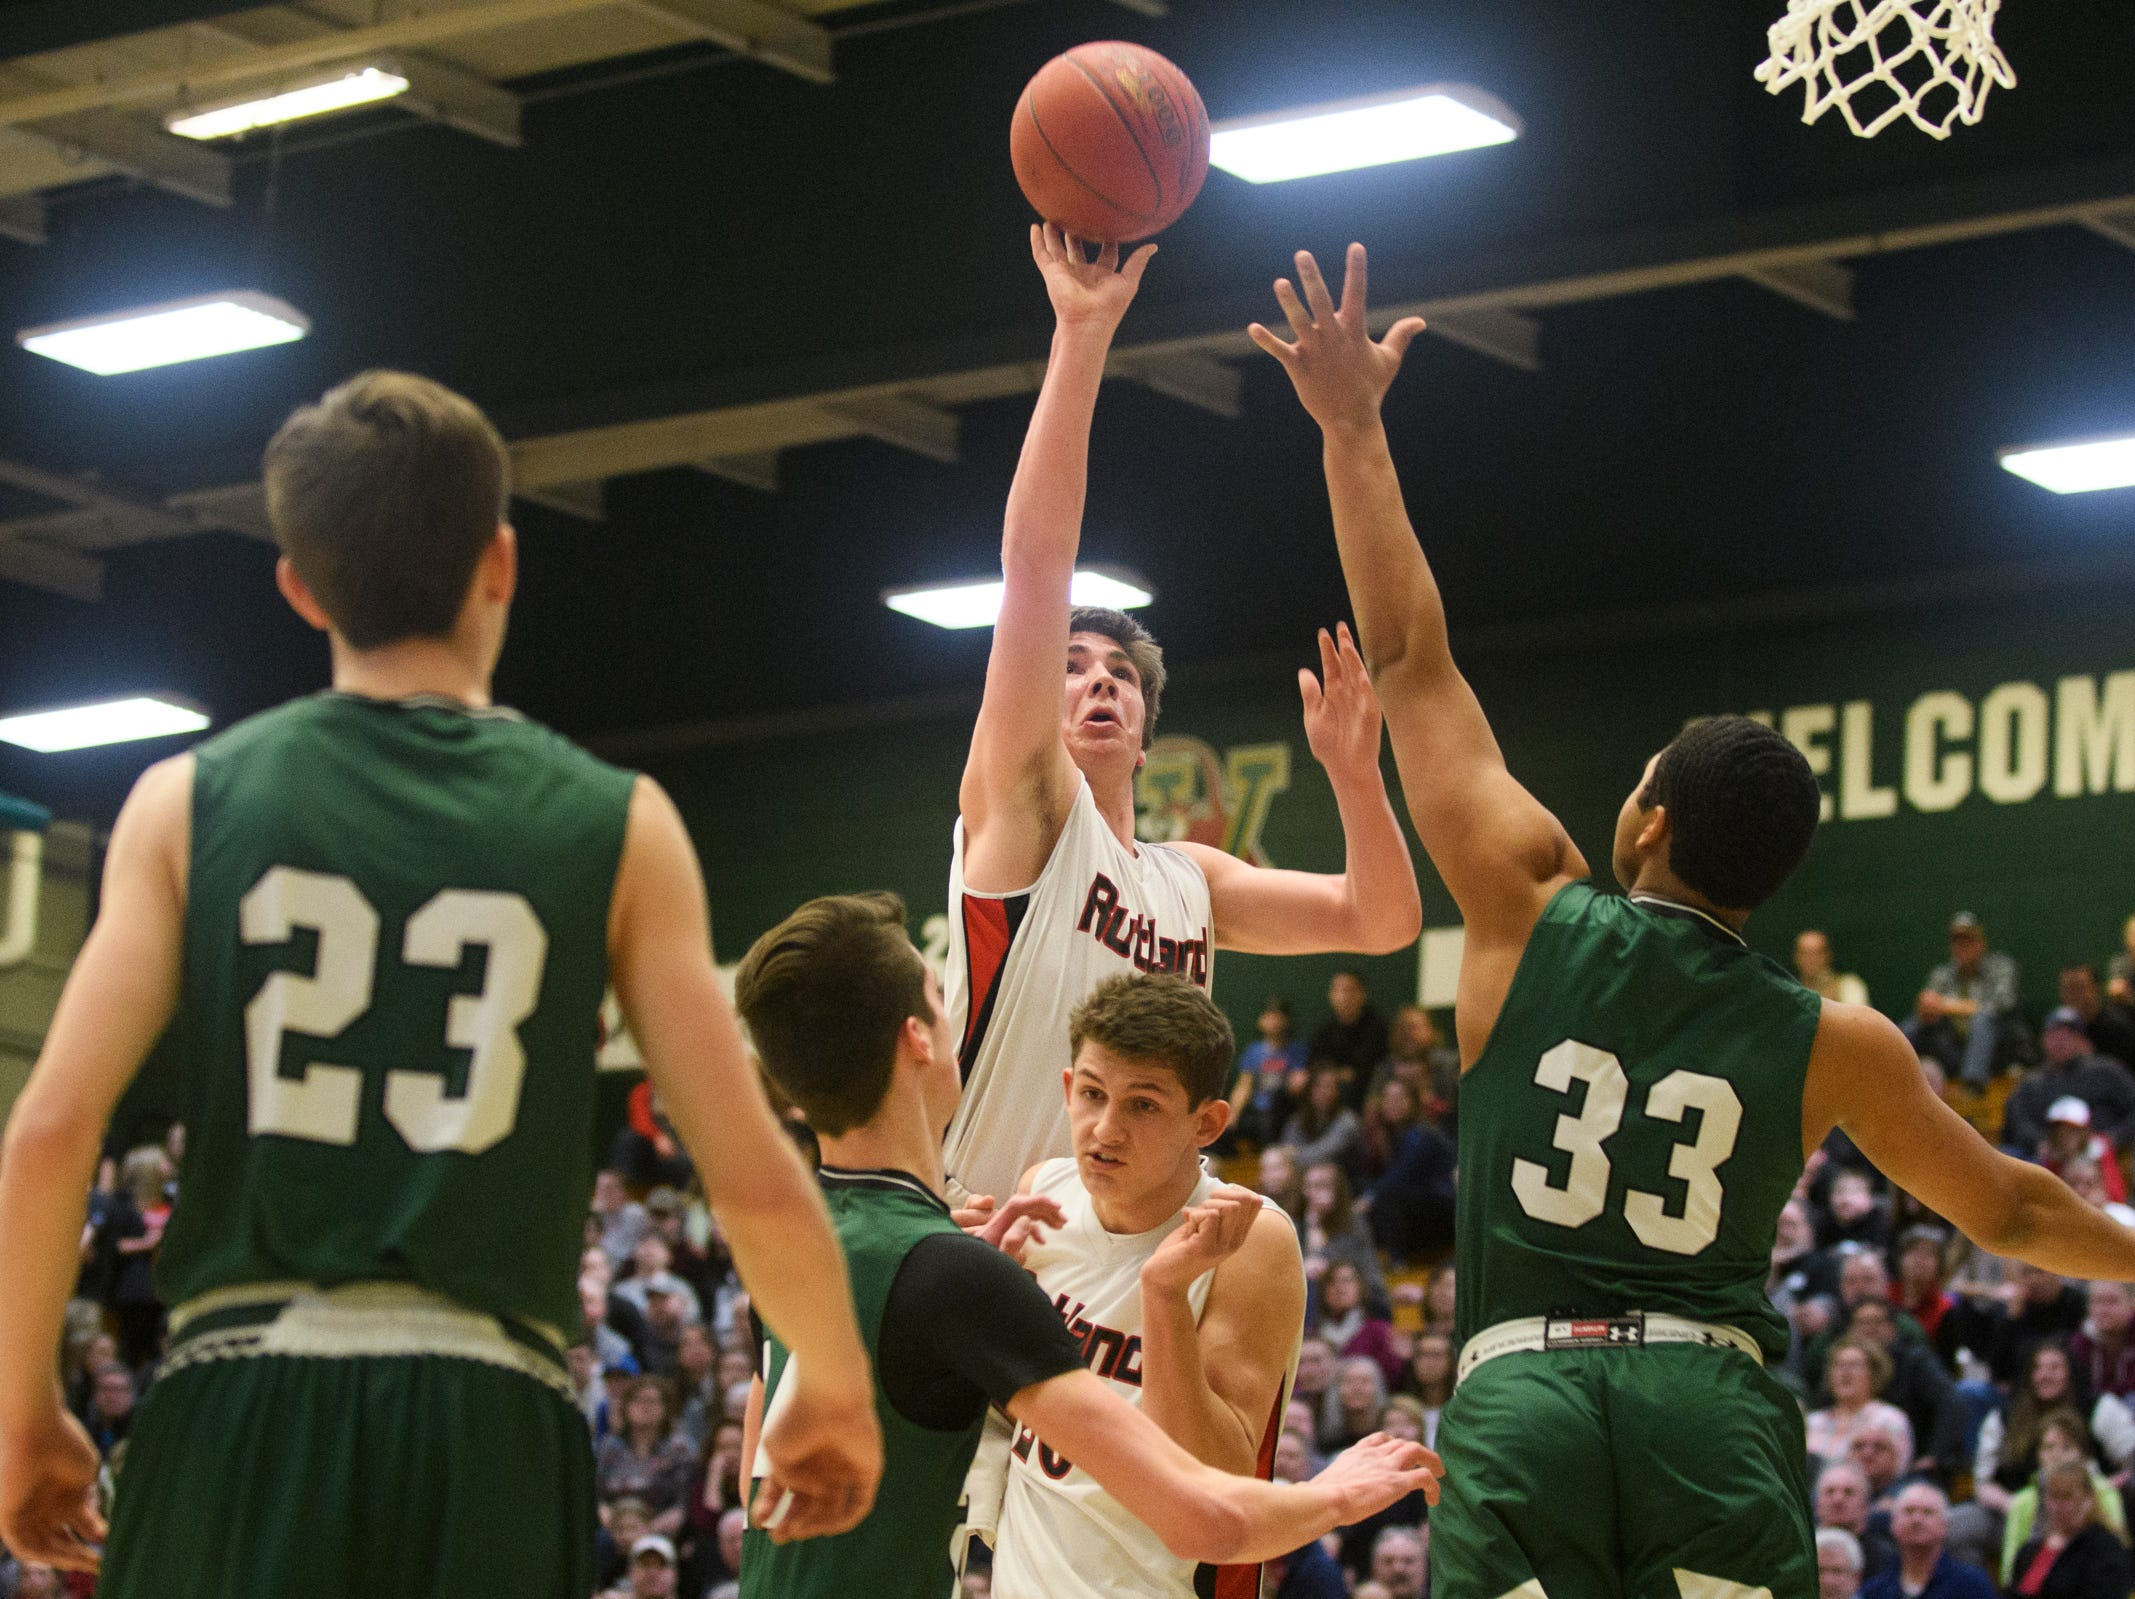 Rutland's Jacob Lorman (24) leaps to take a shot during the DI boys basketball championship game between the St. Johnsbury Hilltoppers and the Rutland Raiders at Patrick Gym on Sunday afternoon March 17, 2019 in Burlington, Vermont.